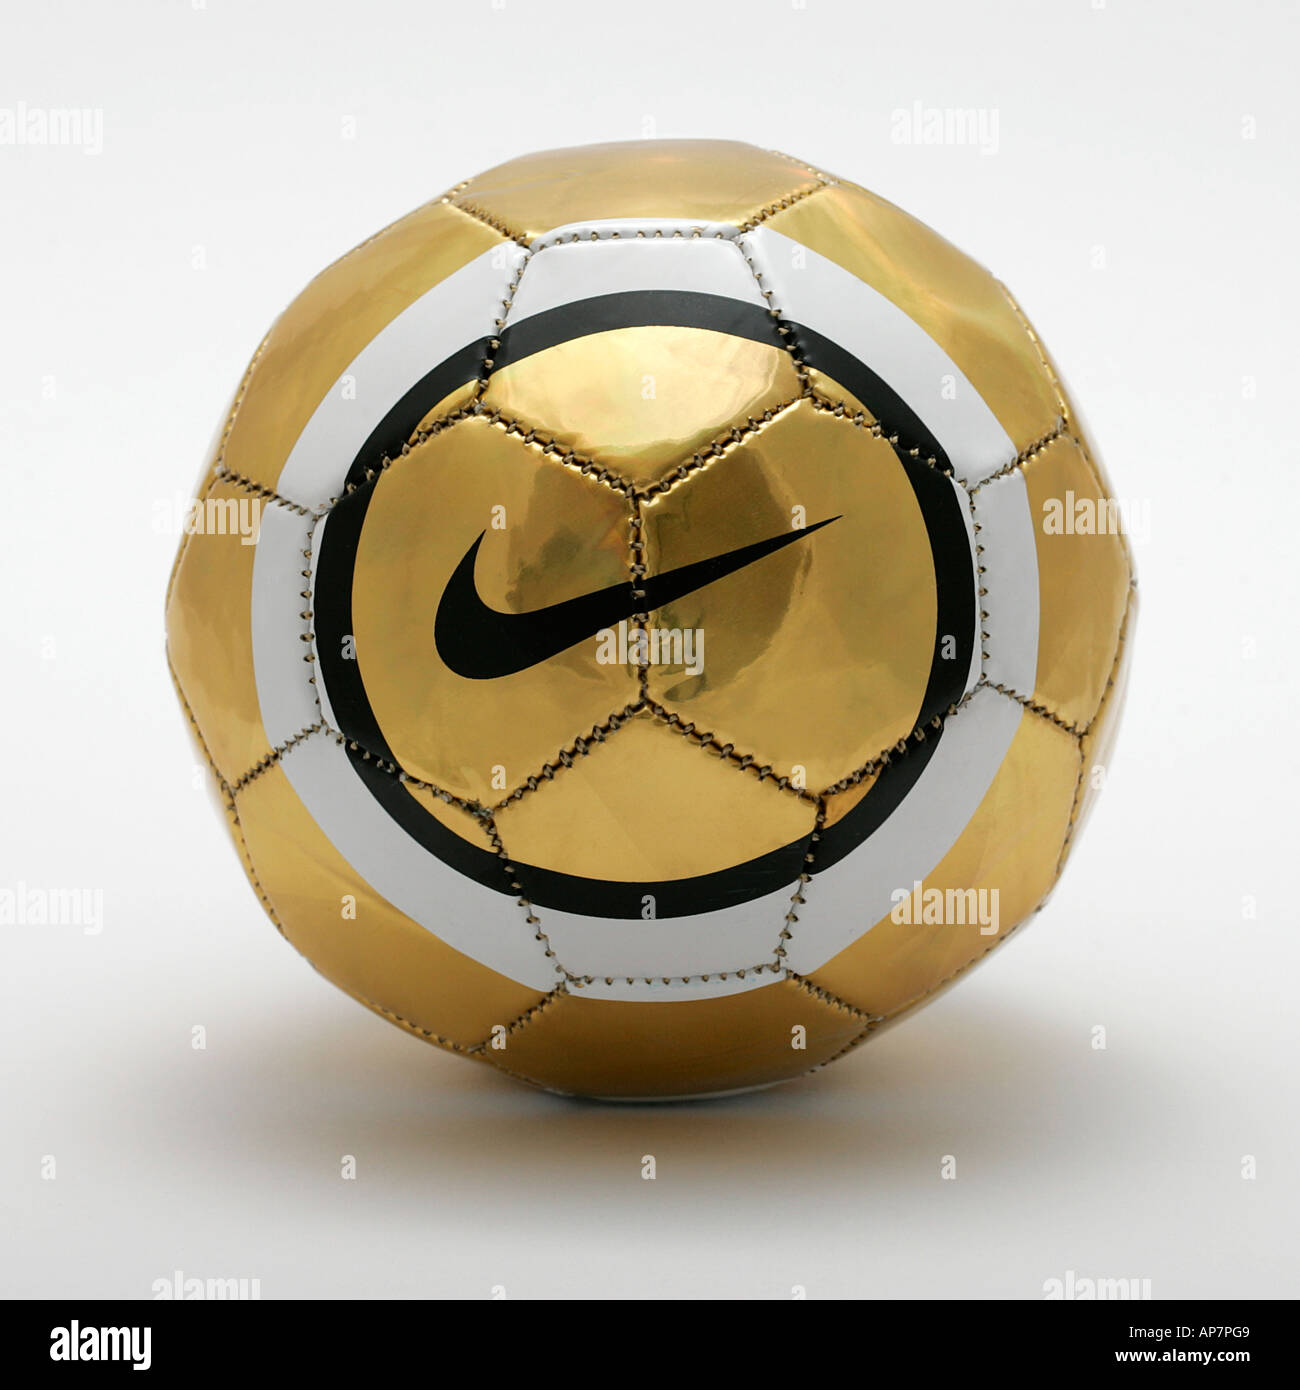 Nike gold team foot ball soccer football club sport circle globe circular  pattern logo team side tribe equipment lifestyle play